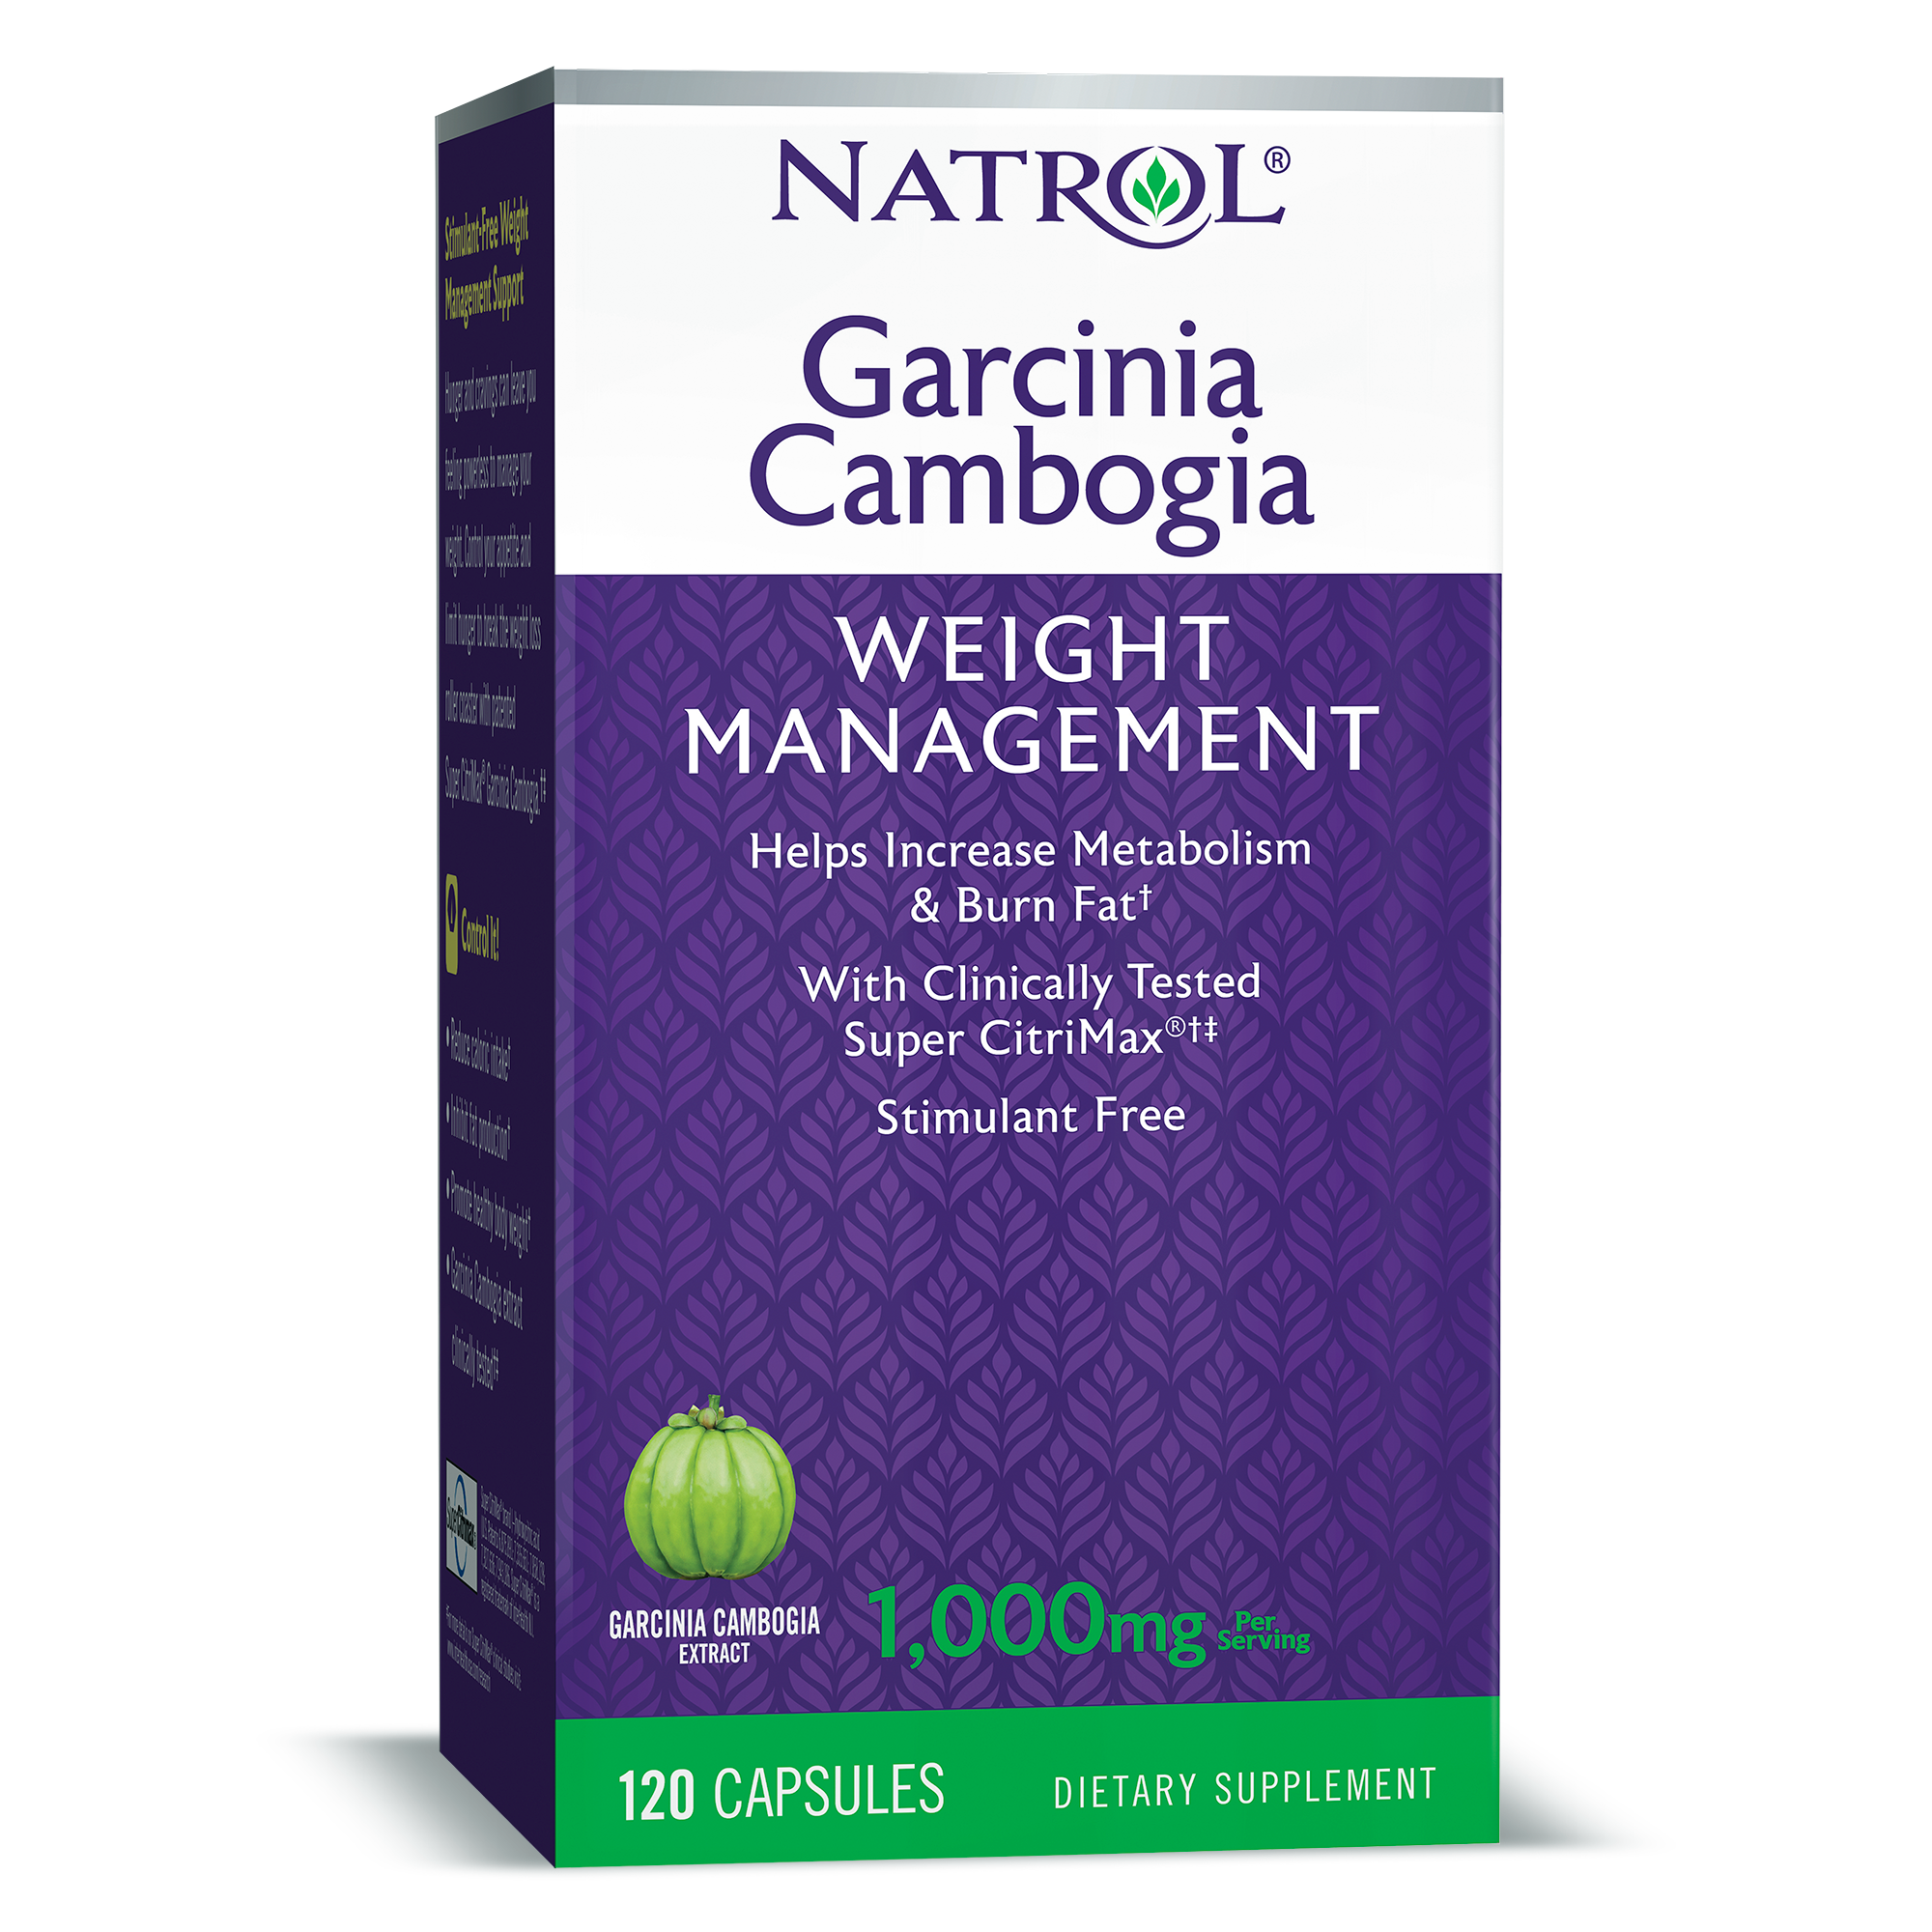 Natrol Natrol Garcinia Cambogia Weight Management 1 000 Mg